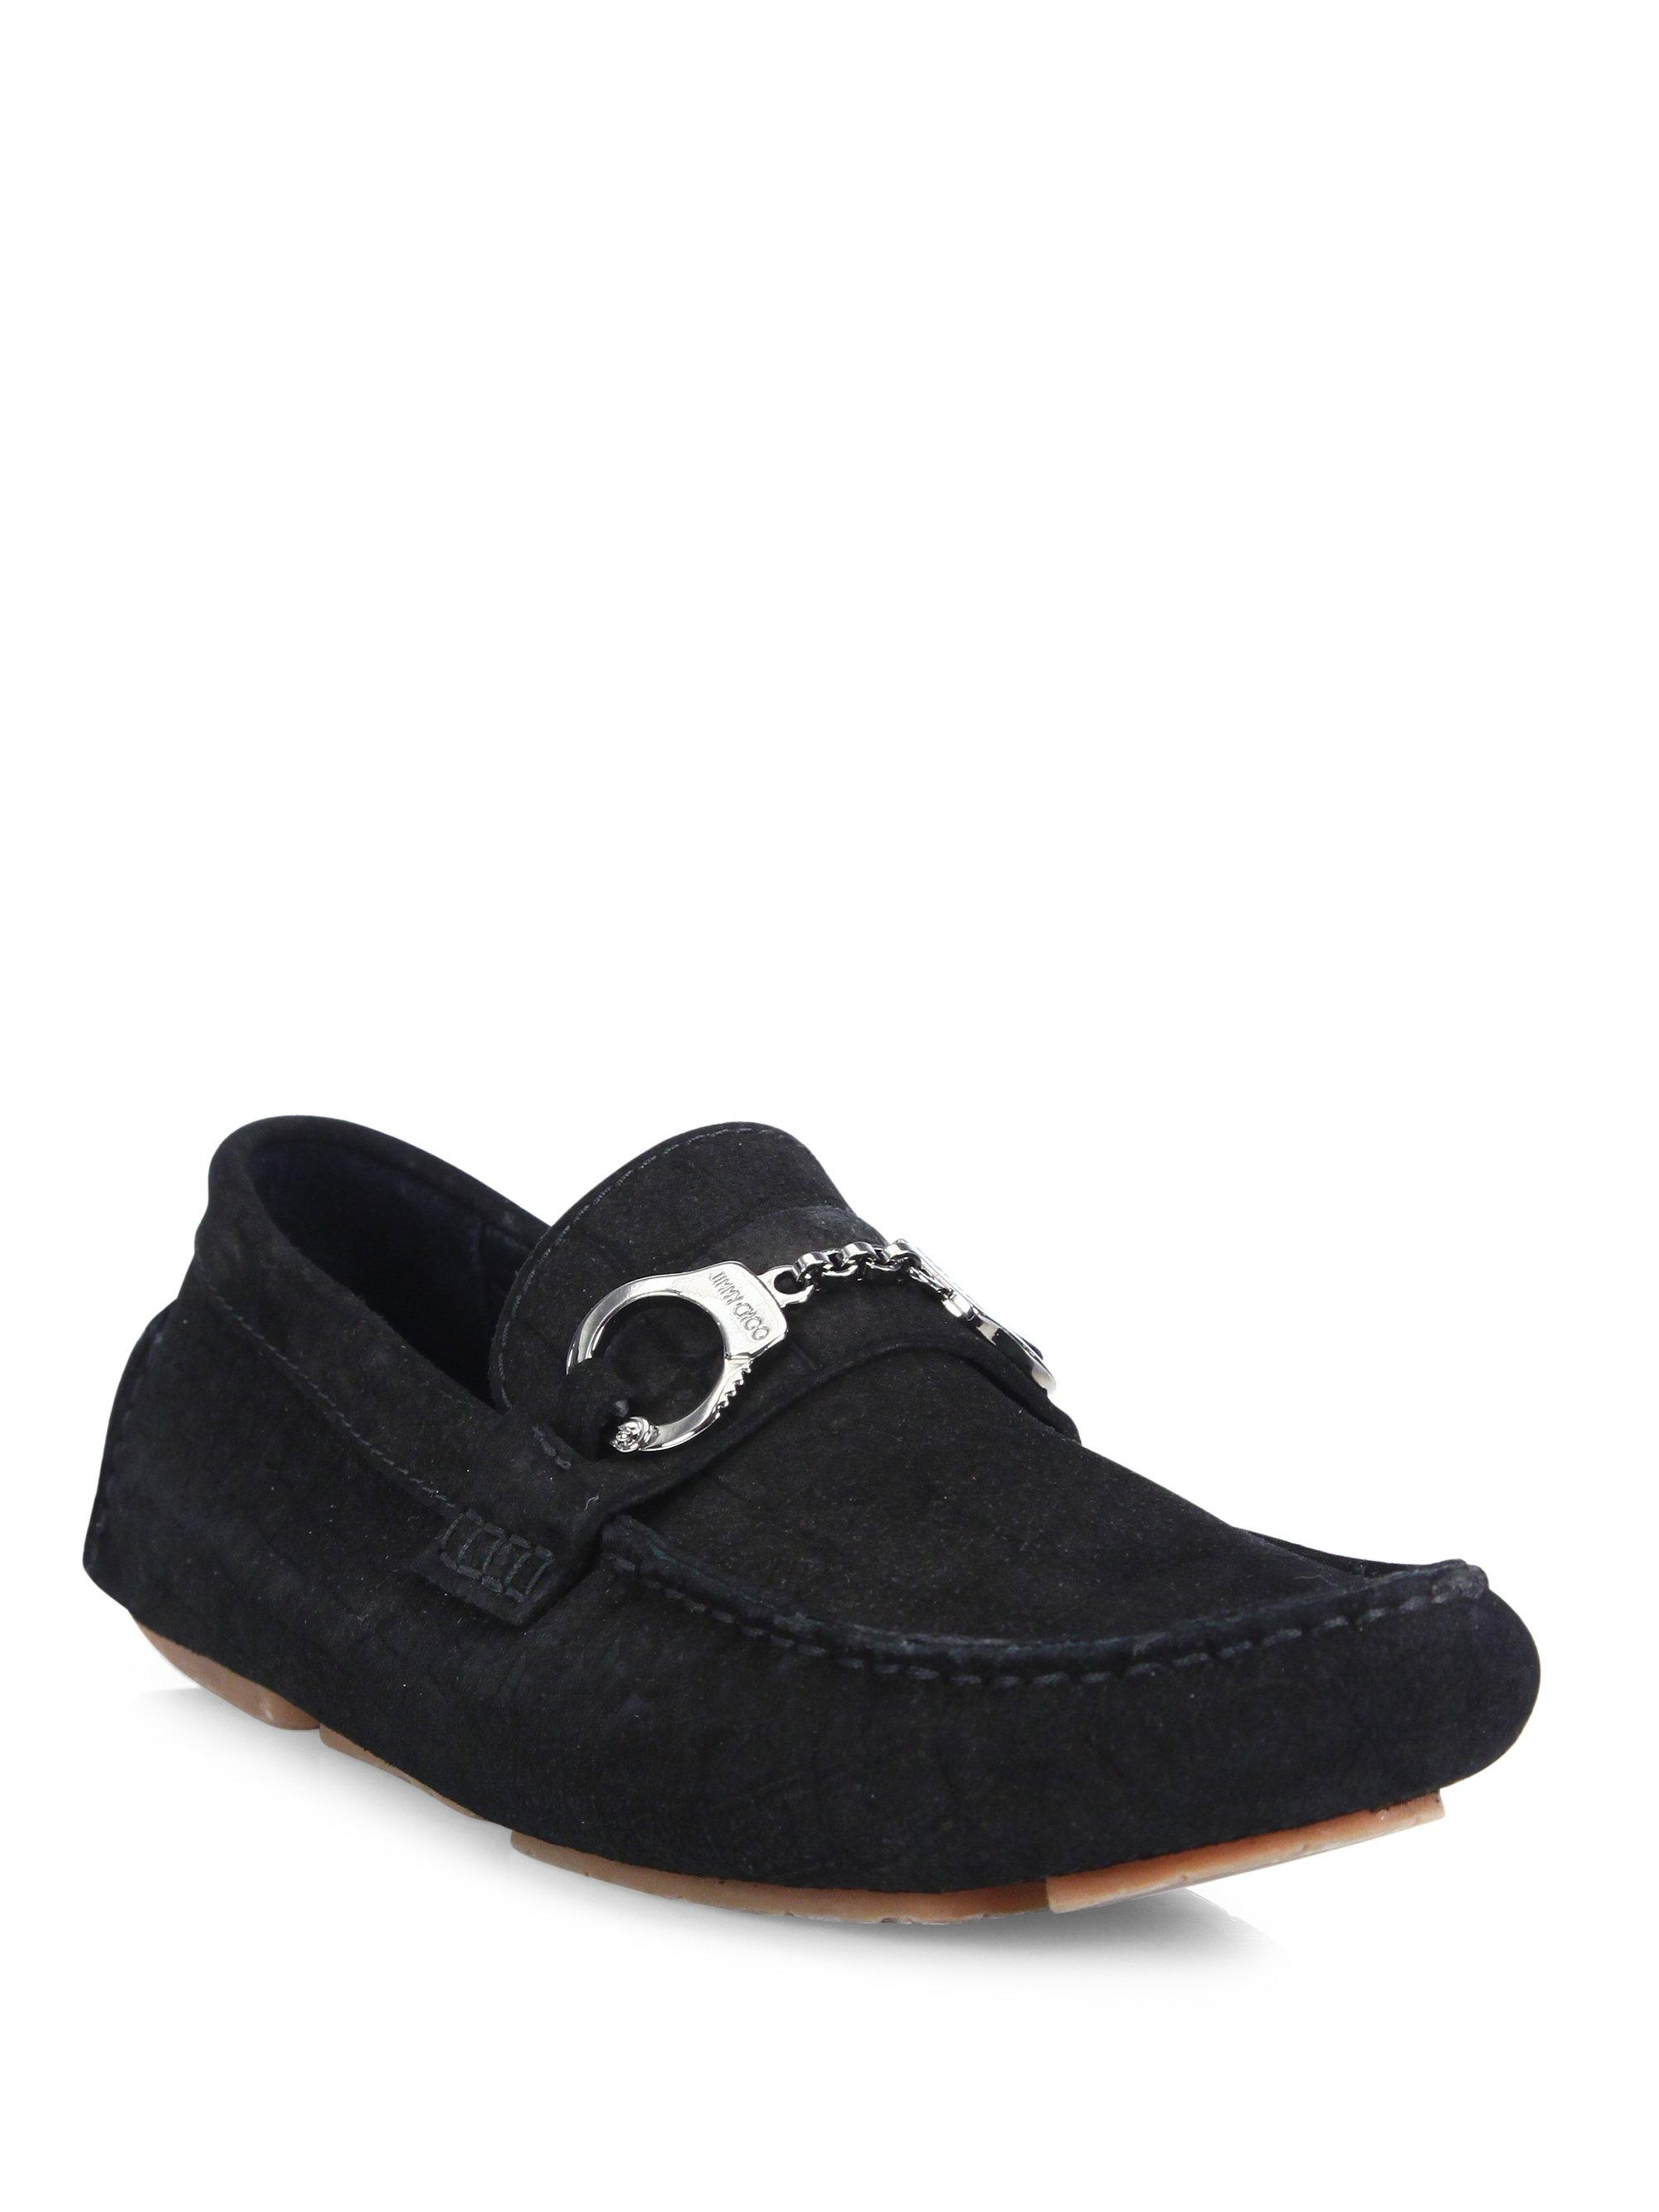 Jimmy chooHandcuff Leather Loafers oJuwPM